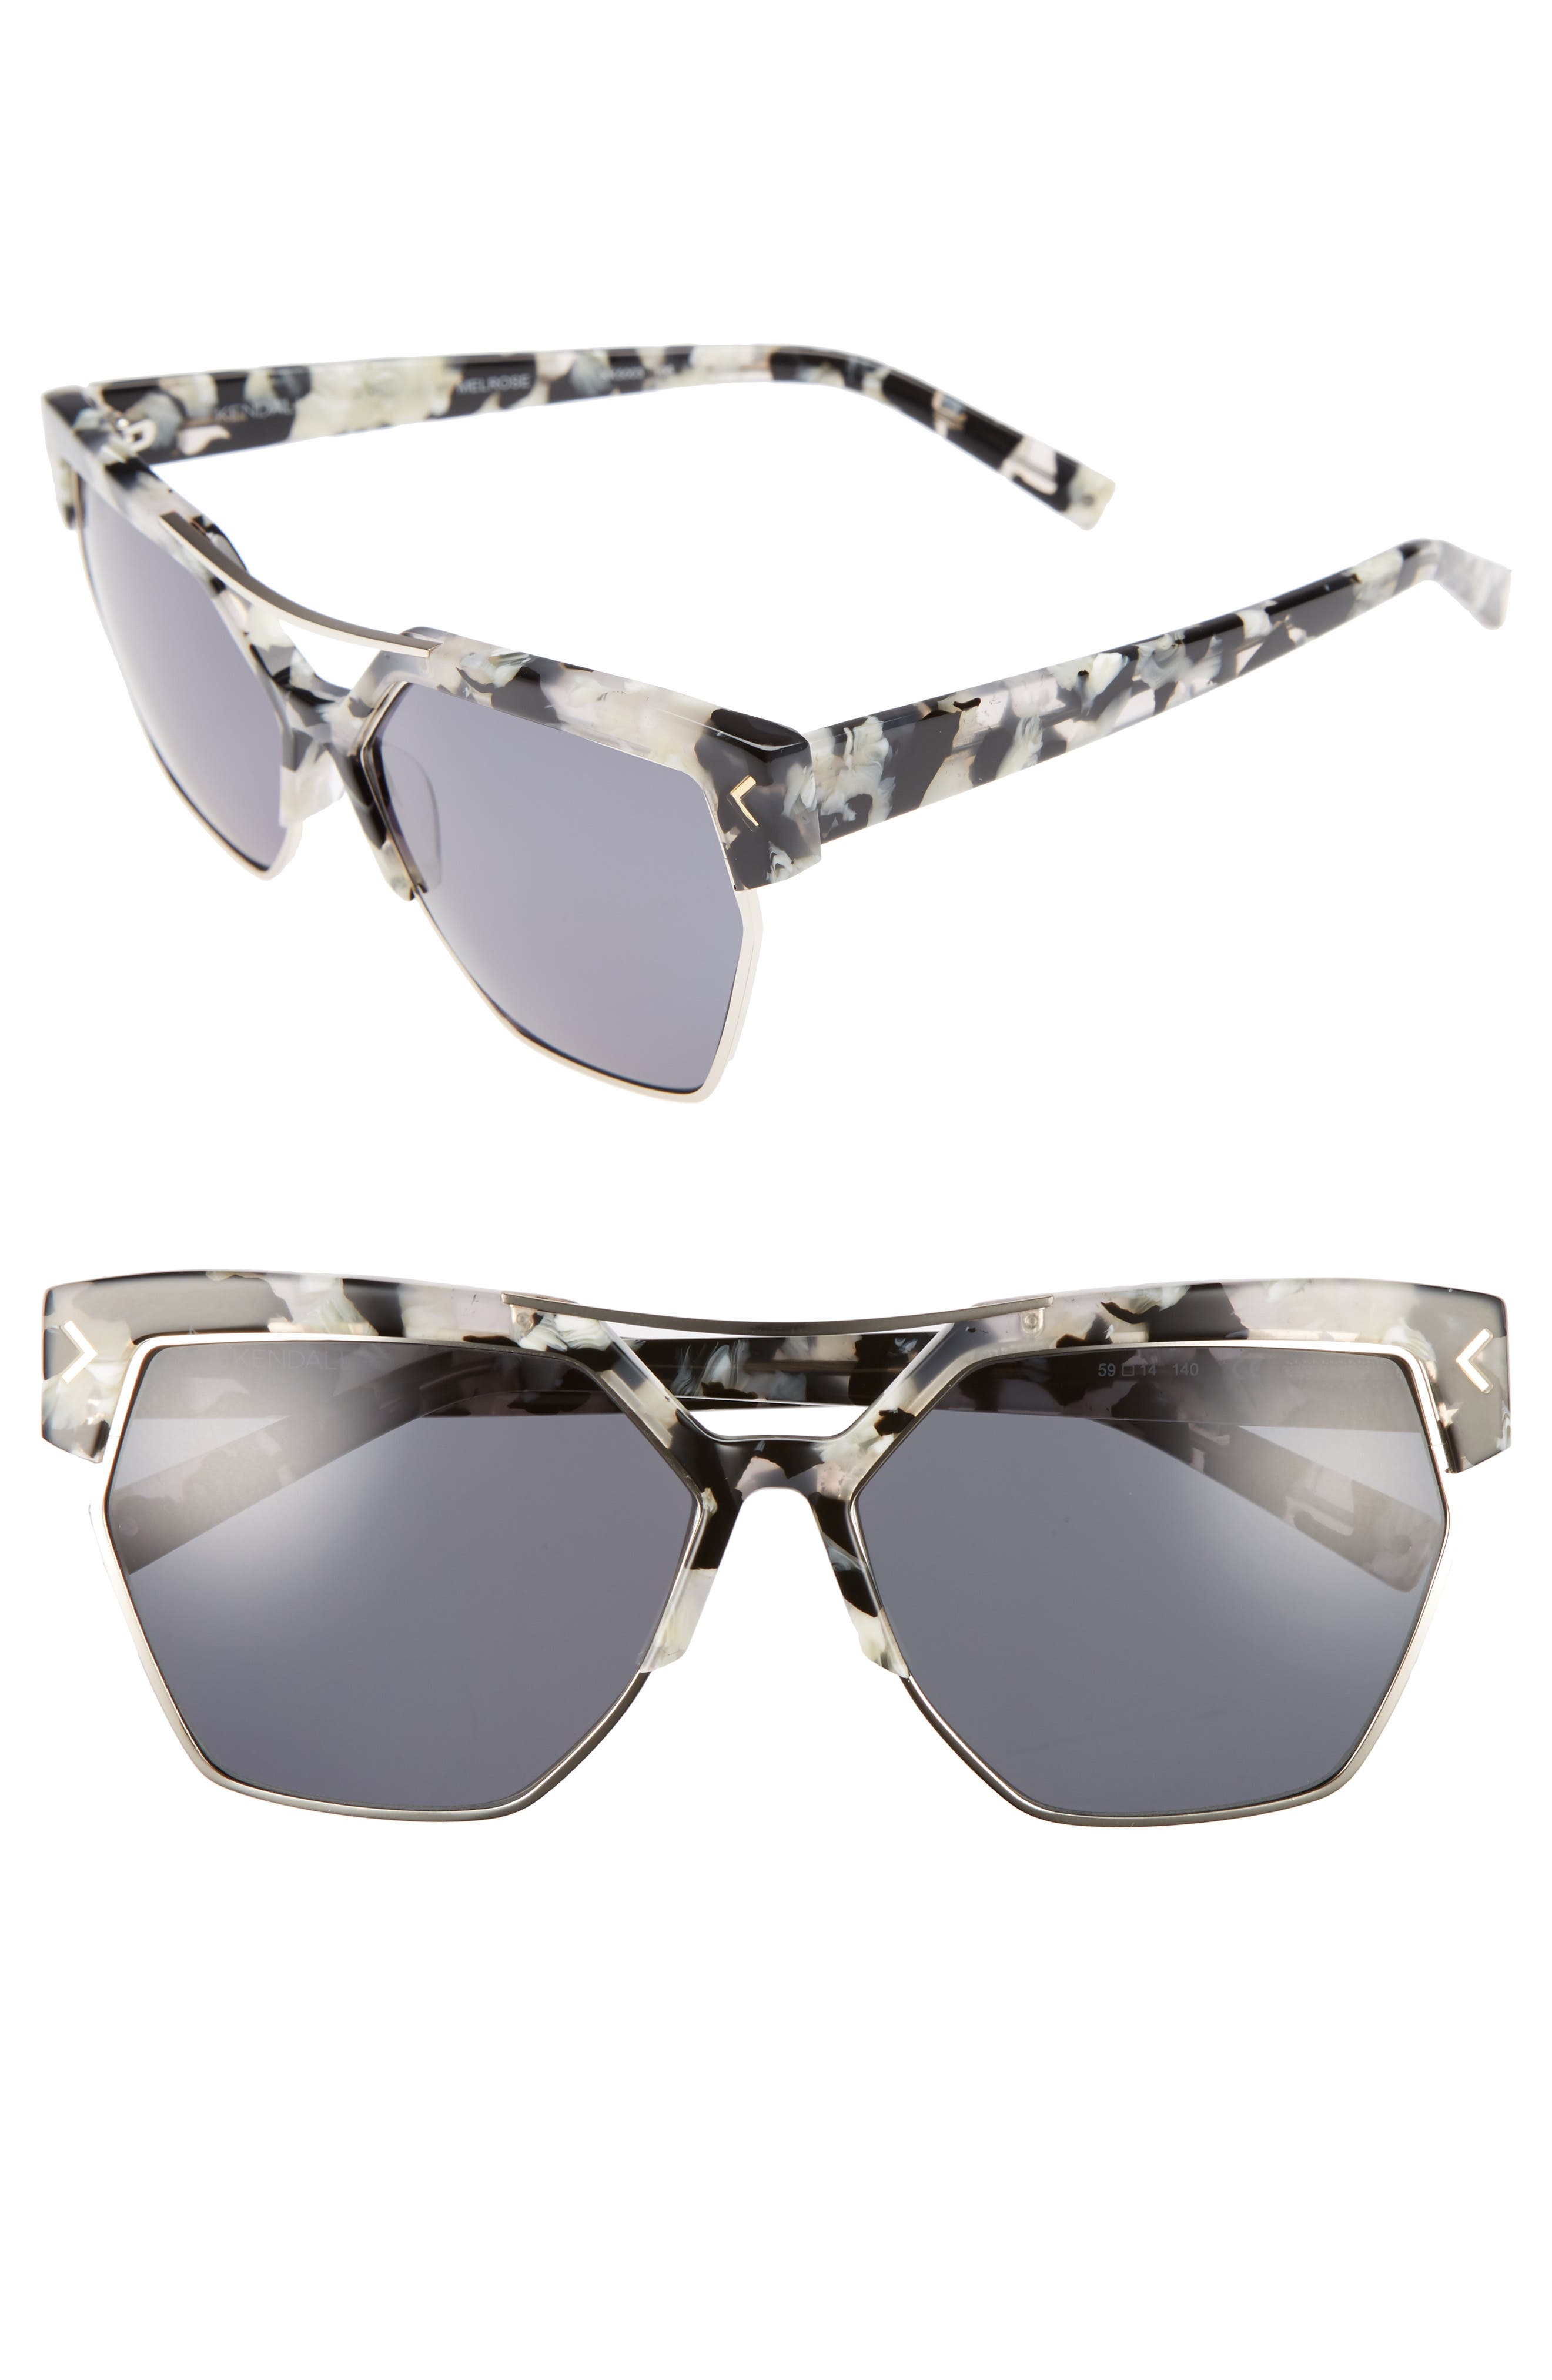 KENDALL + KYLIE 55mm Retro Sunglasses